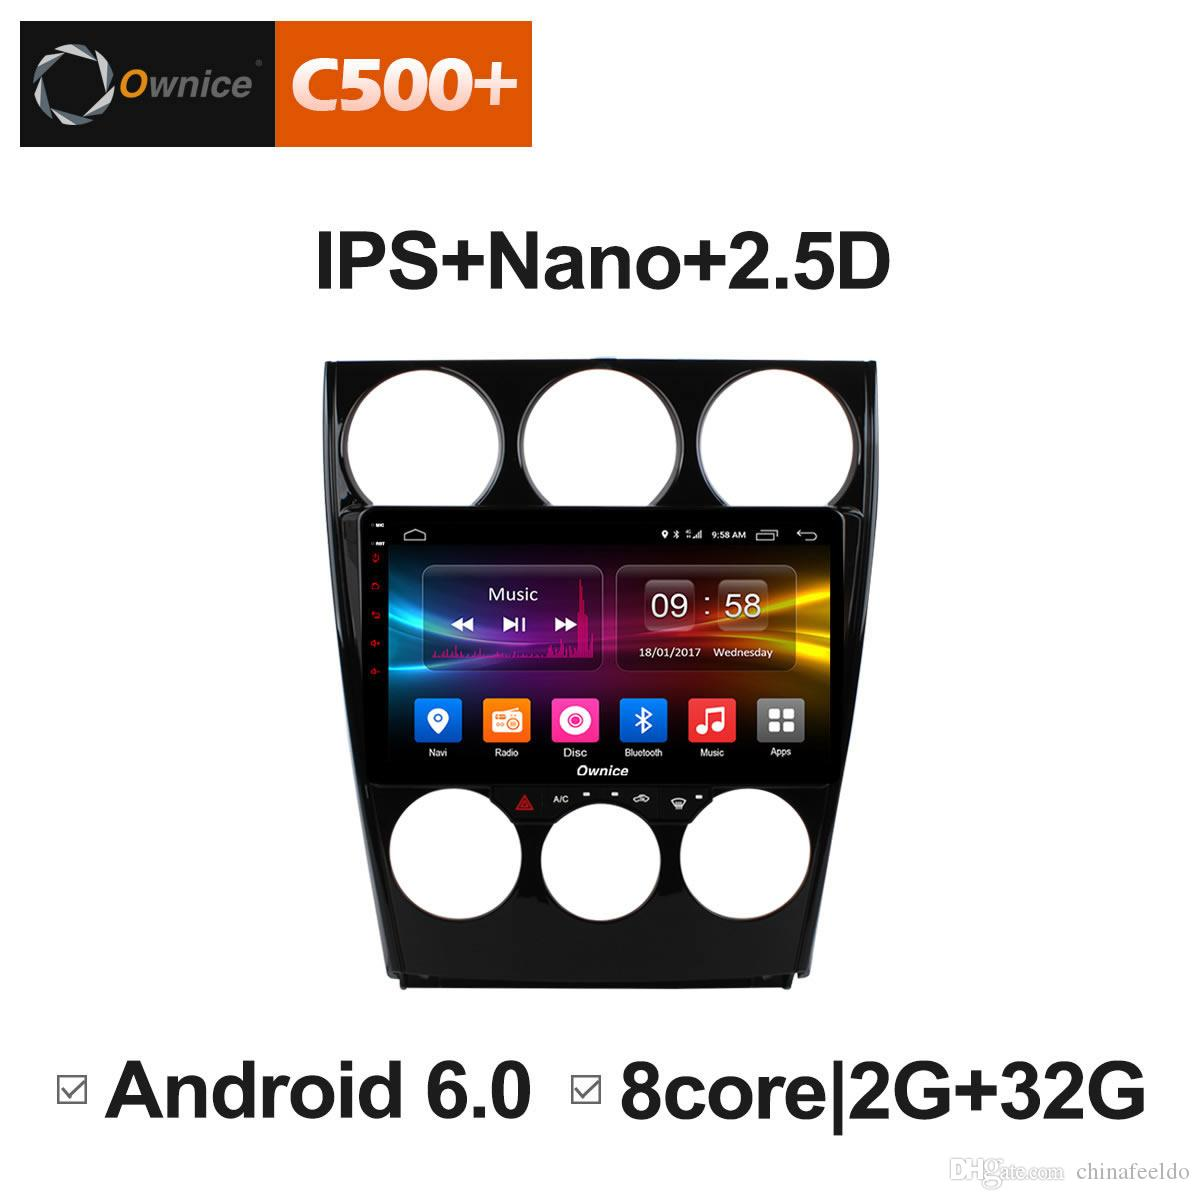 9 2 5D Nano IPS Screen Android Octa Core/4G LTE Car Media Player With GPS  RDS Radio/Bluetooth For Mazda 6 2006-2015#5862